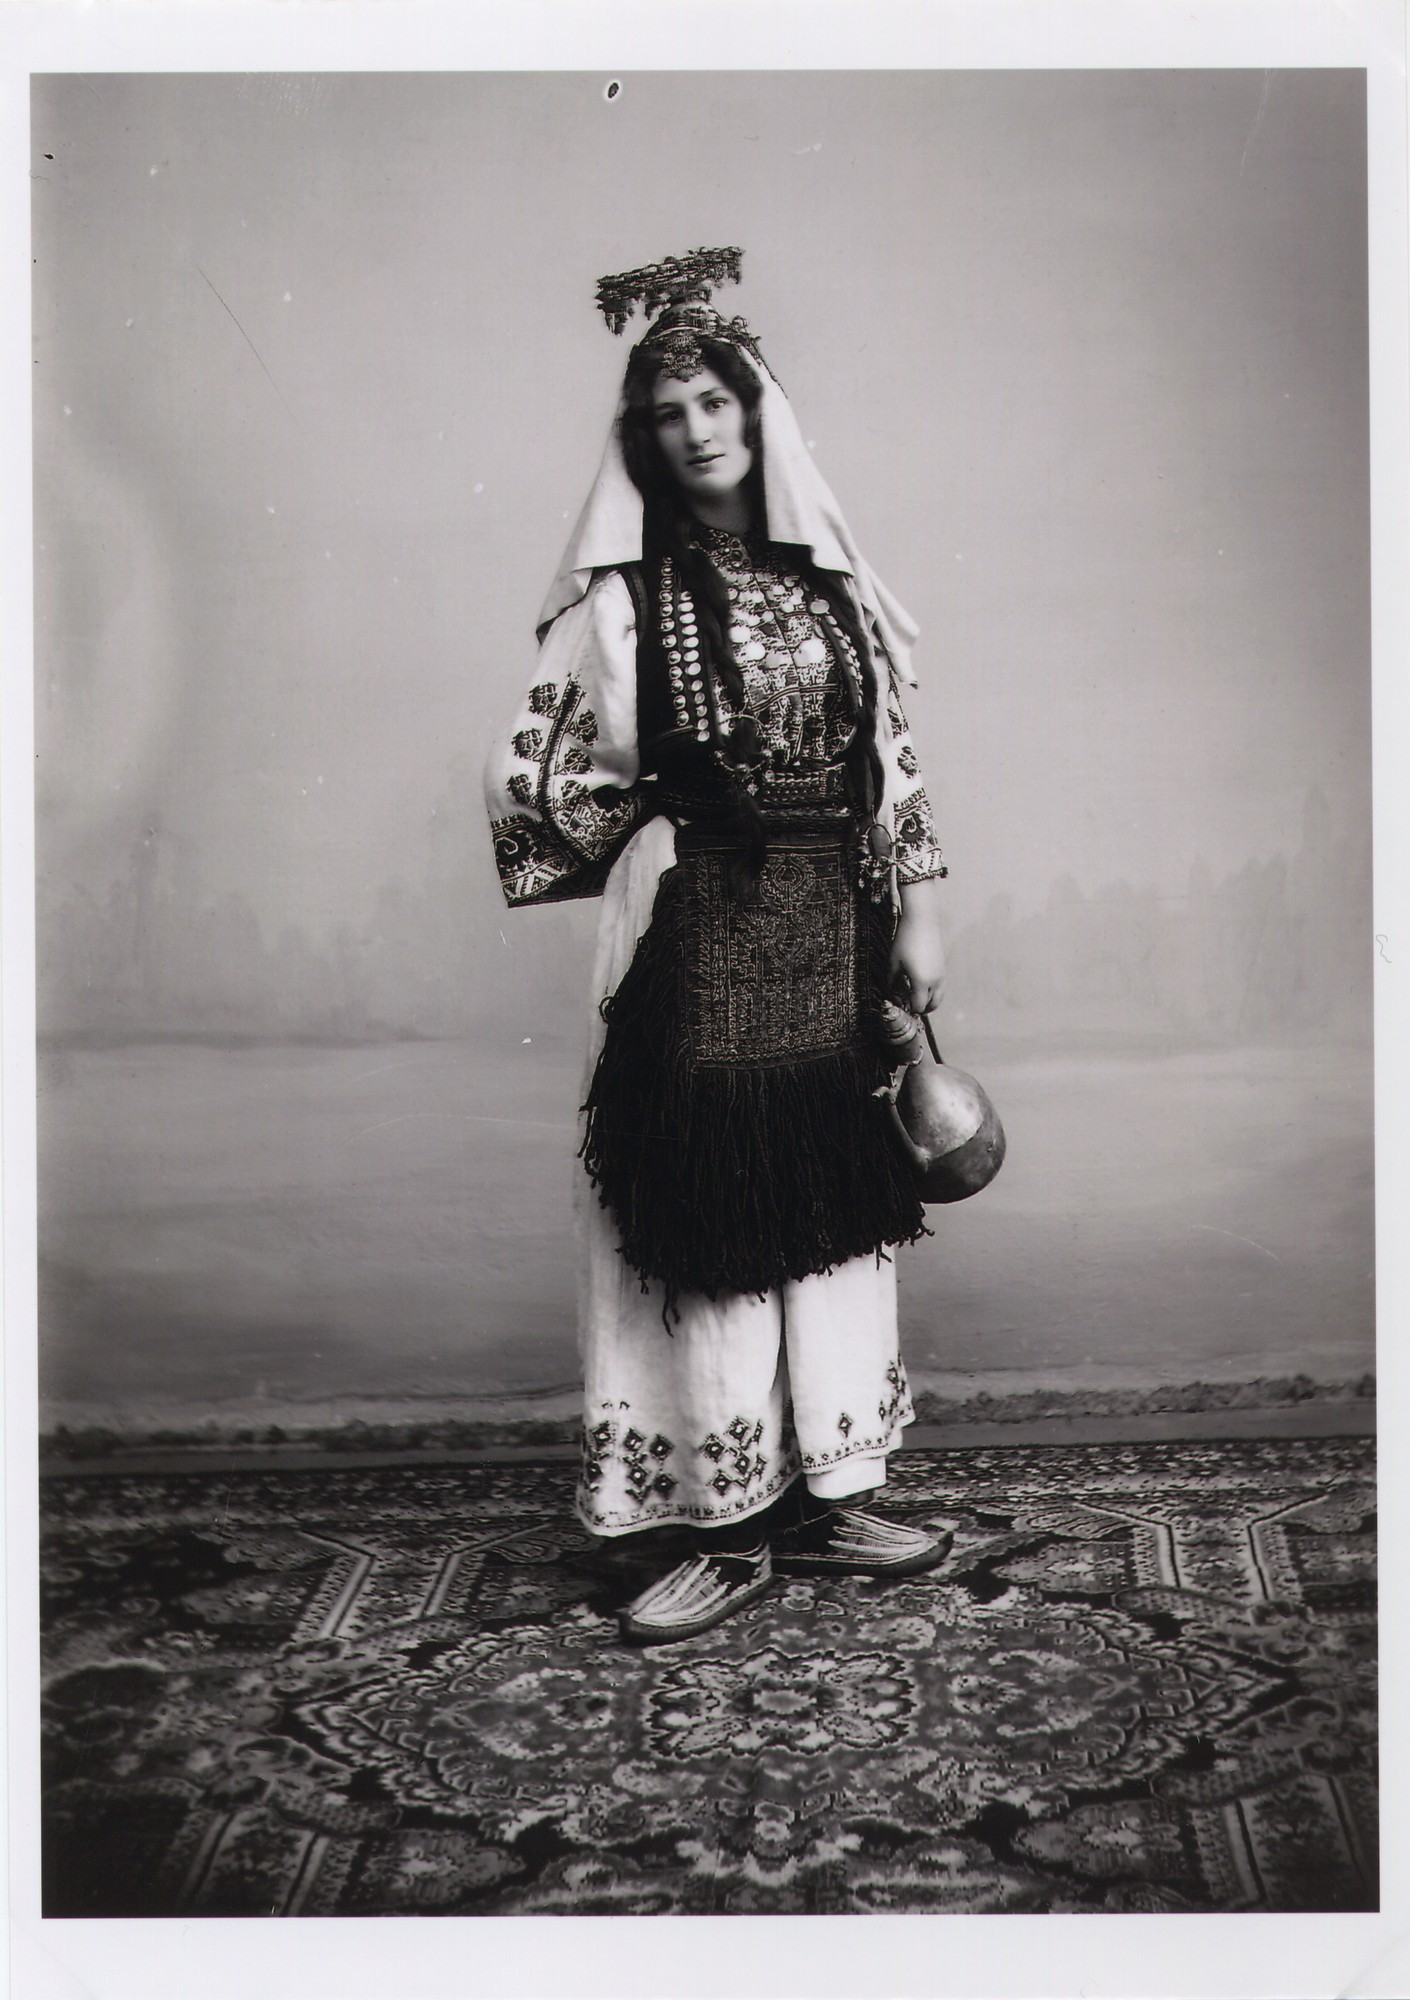 Studio portrait of a woman in traditional Orthodox clothes with a headdress, © The National Museum of Bosnia and Herzegovina